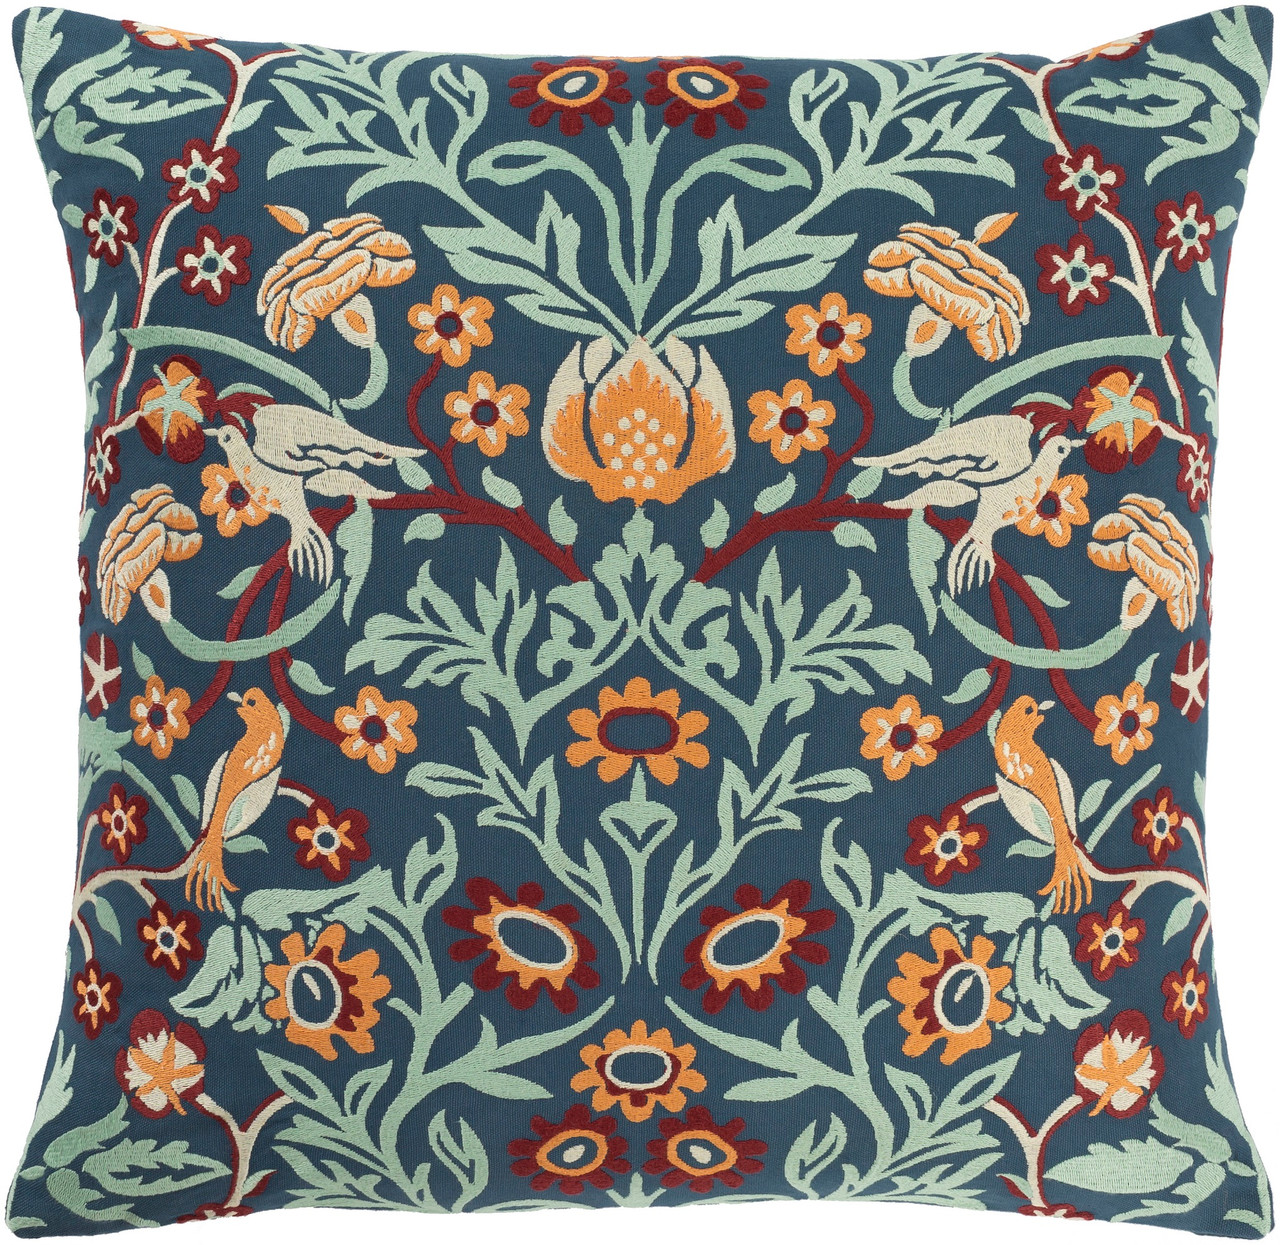 20 navy blue and red floral square throw pillow cover